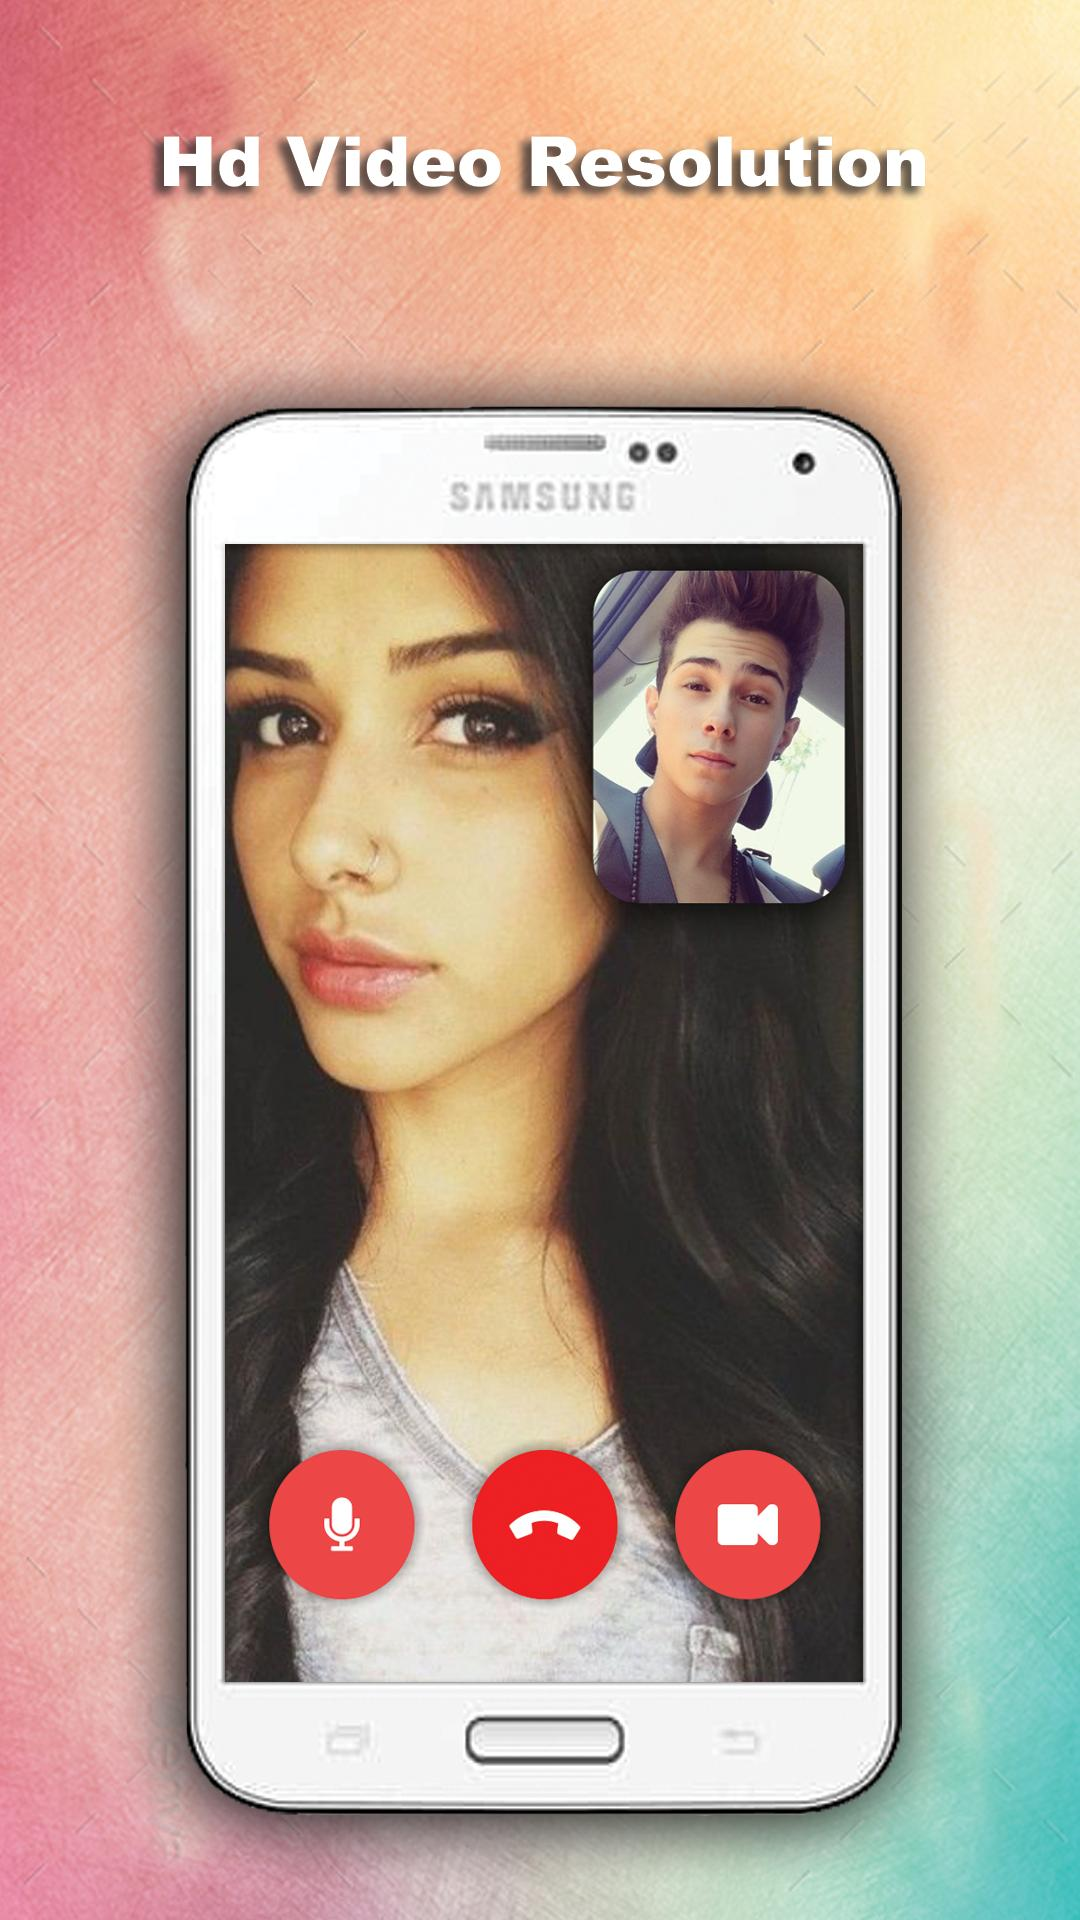 Random Video Chat for Android - APK Download